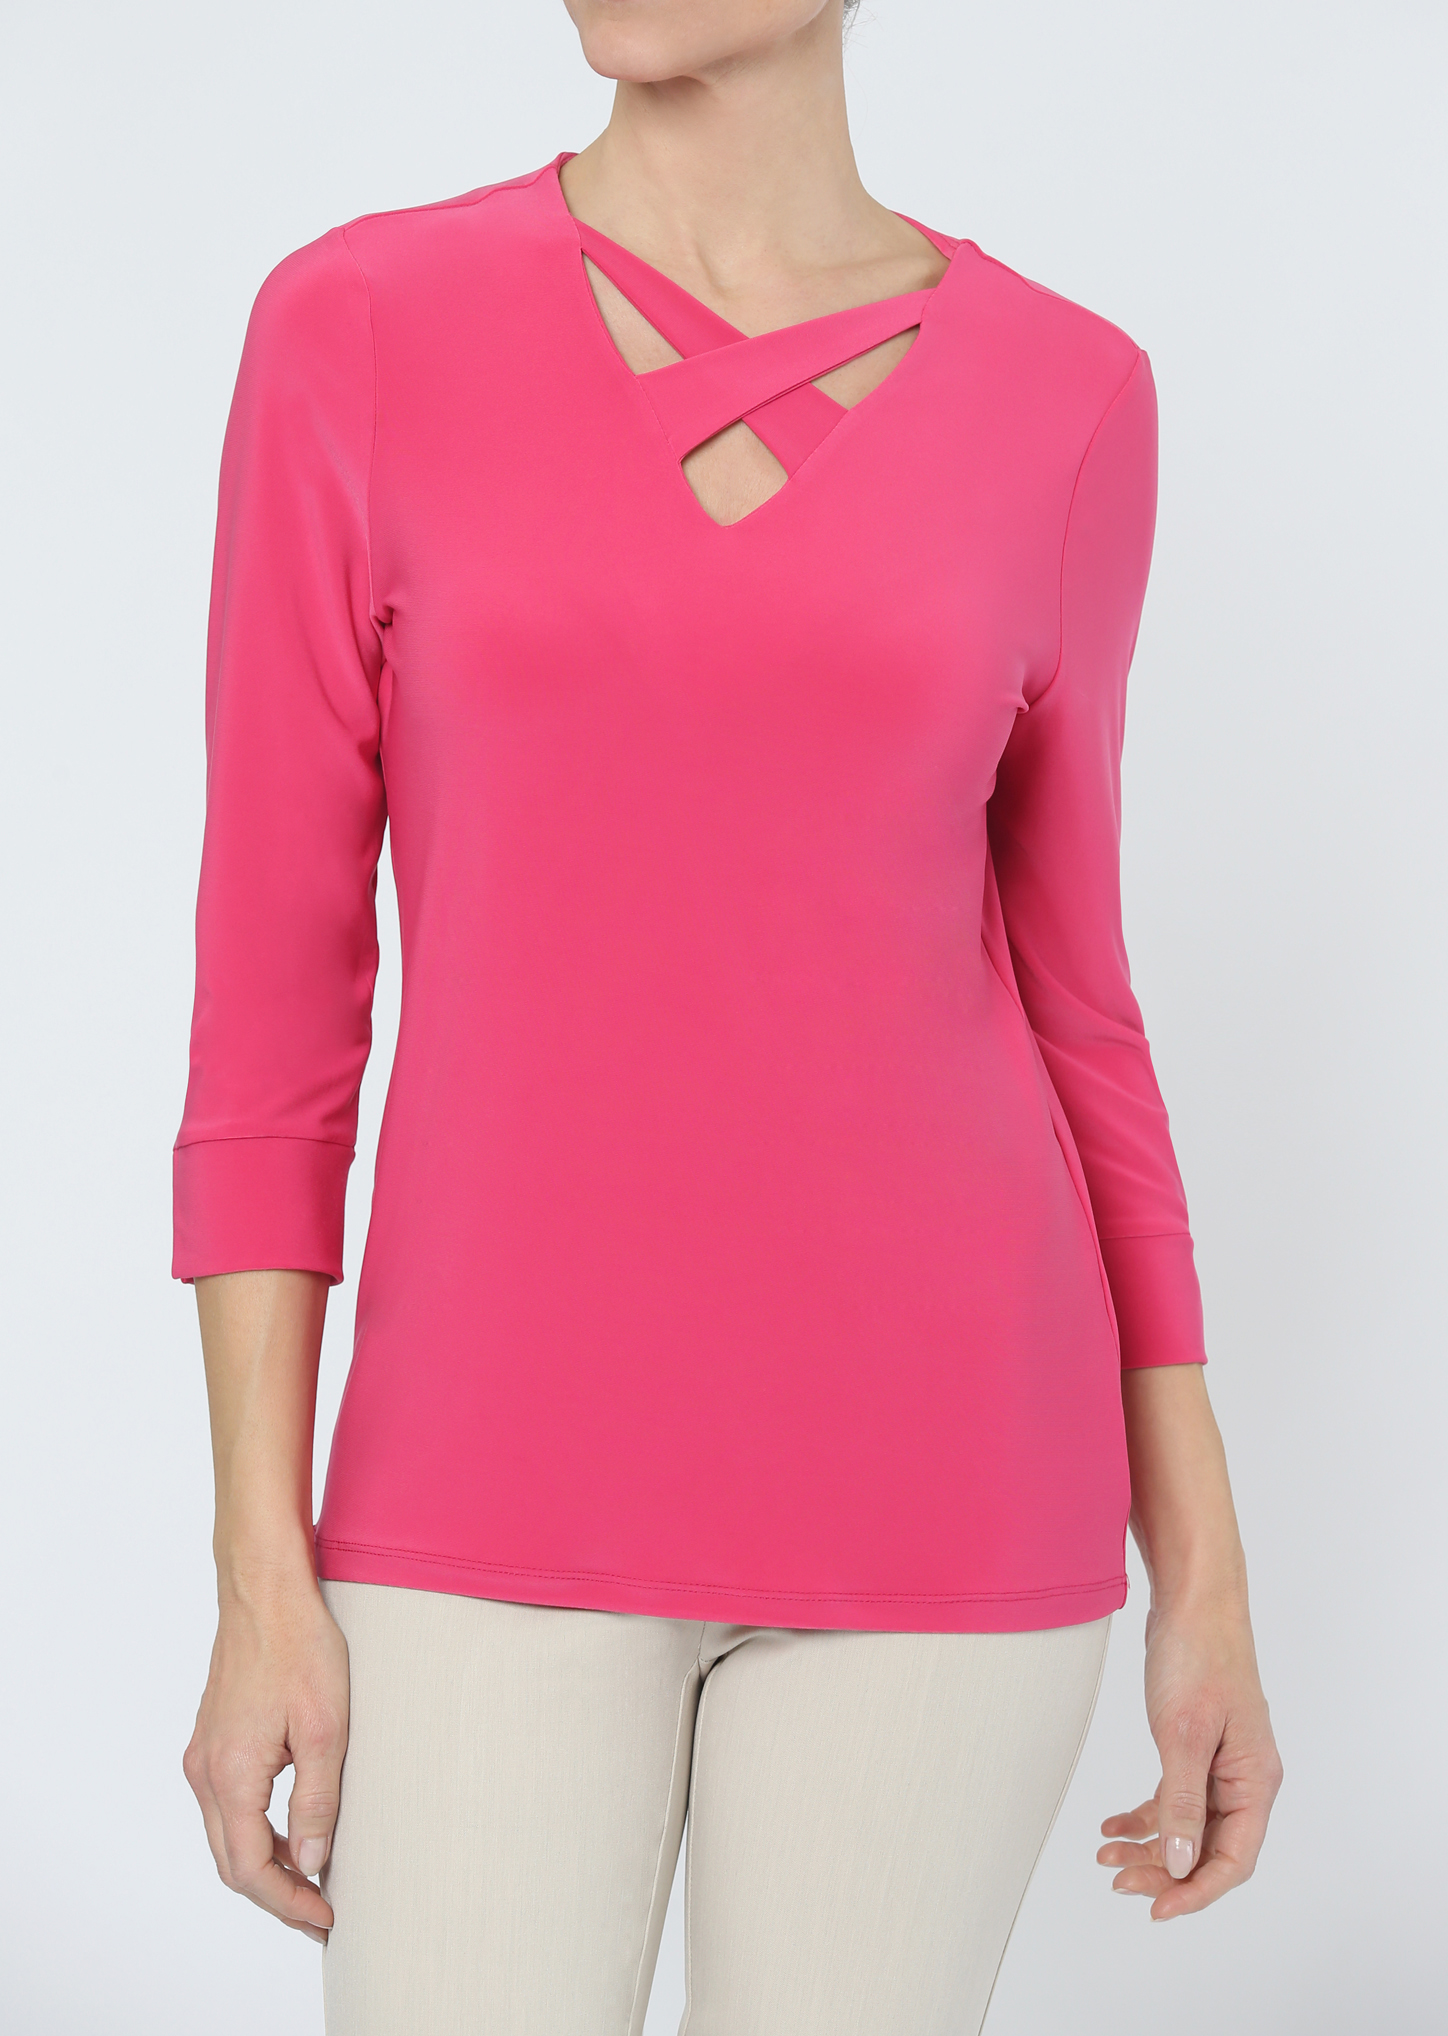 Lisette L. Top Style 171118 Emma Knit, 4 Colors Available